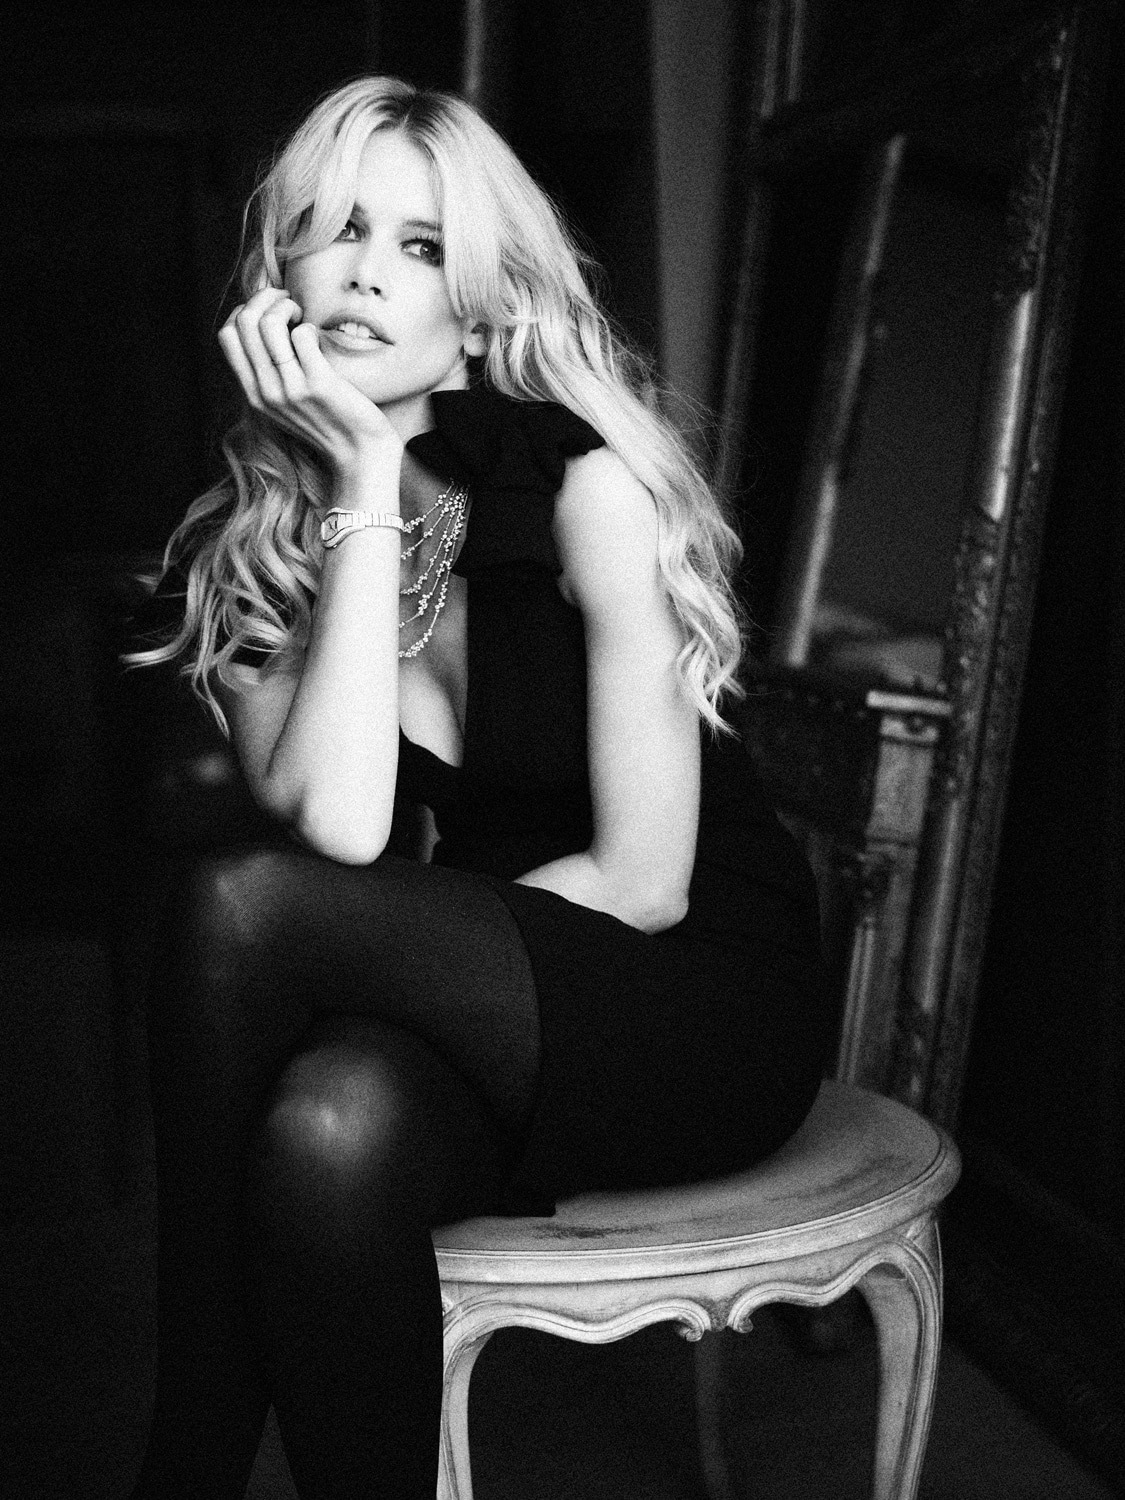 CLAUDIA SCHIFFER PHOTOGRAPHED AT CARTON HOUSE FOR PAUL SHEERAN JEWELERS.